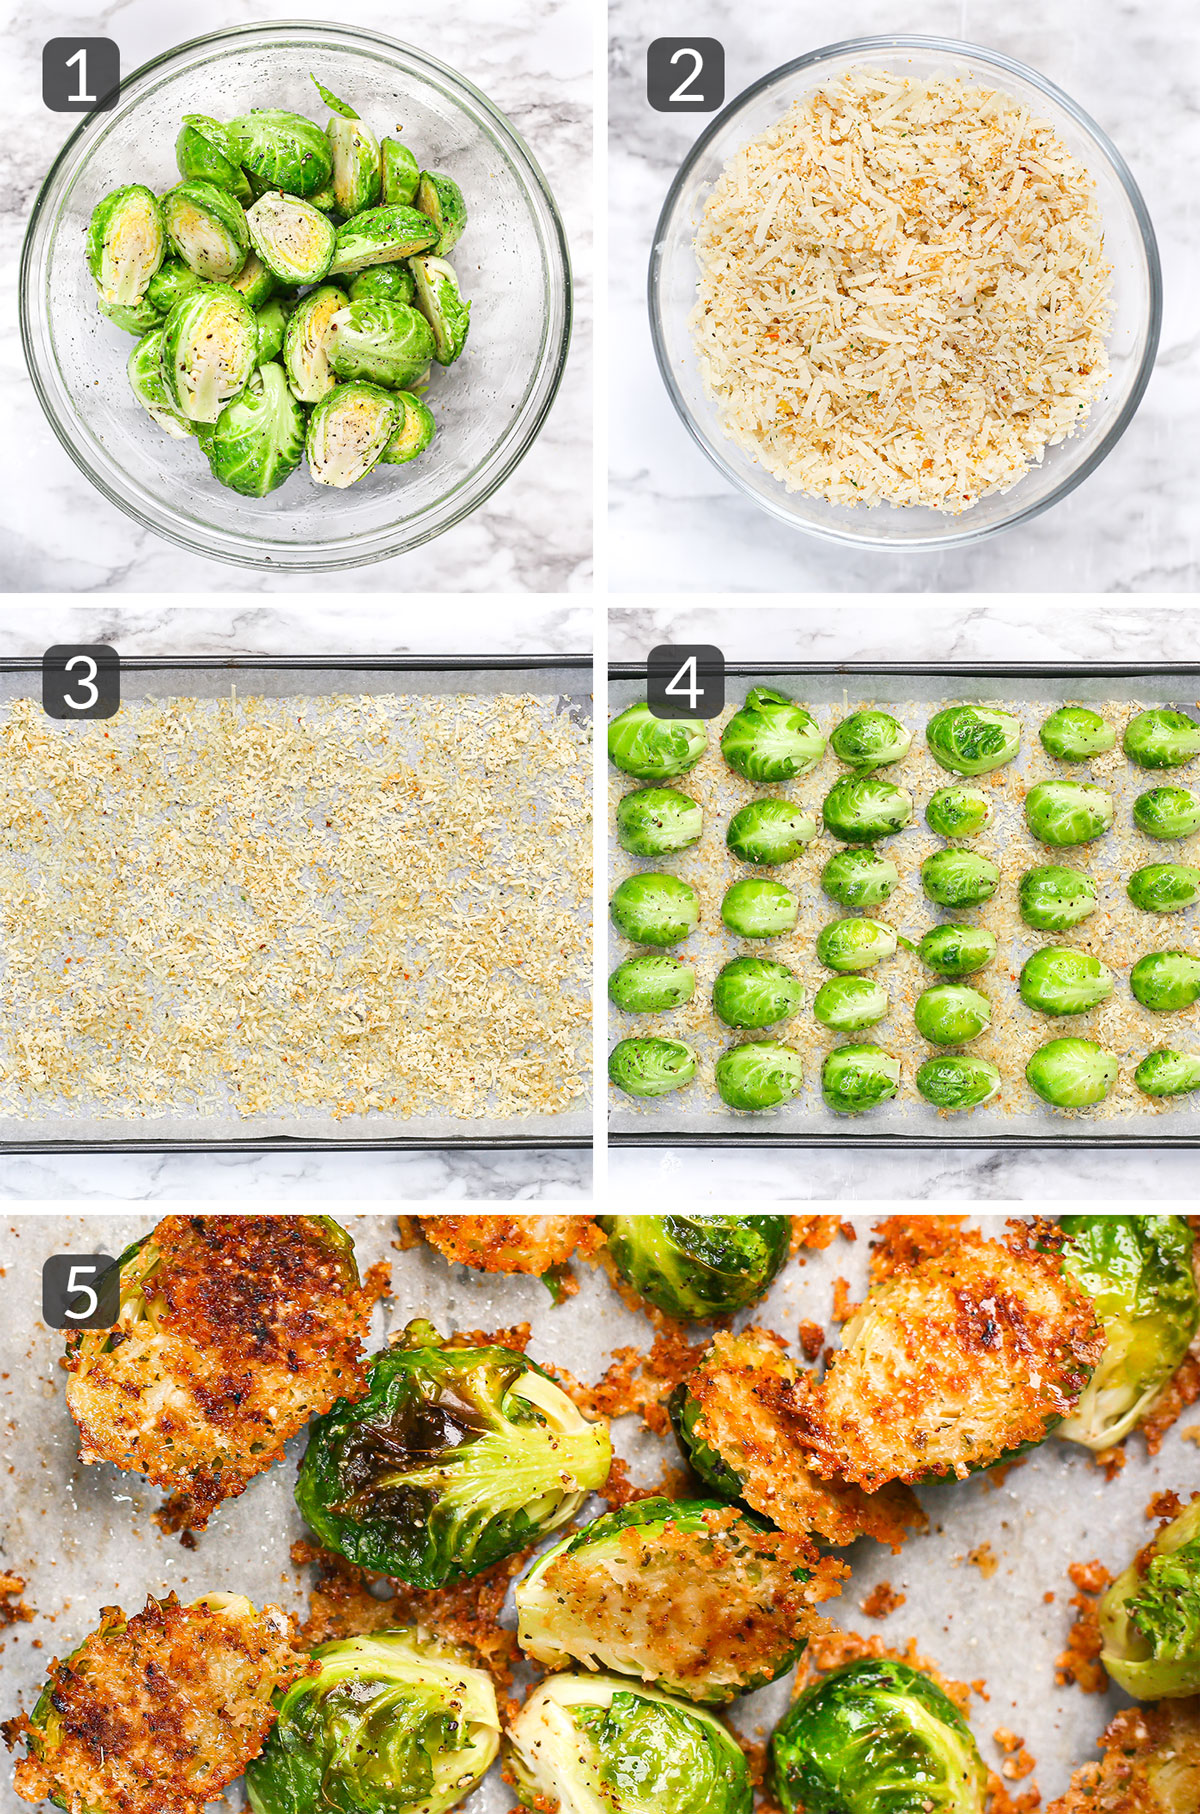 step-by-step photos showing how to make crispy parmesan roasted brussels sprouts